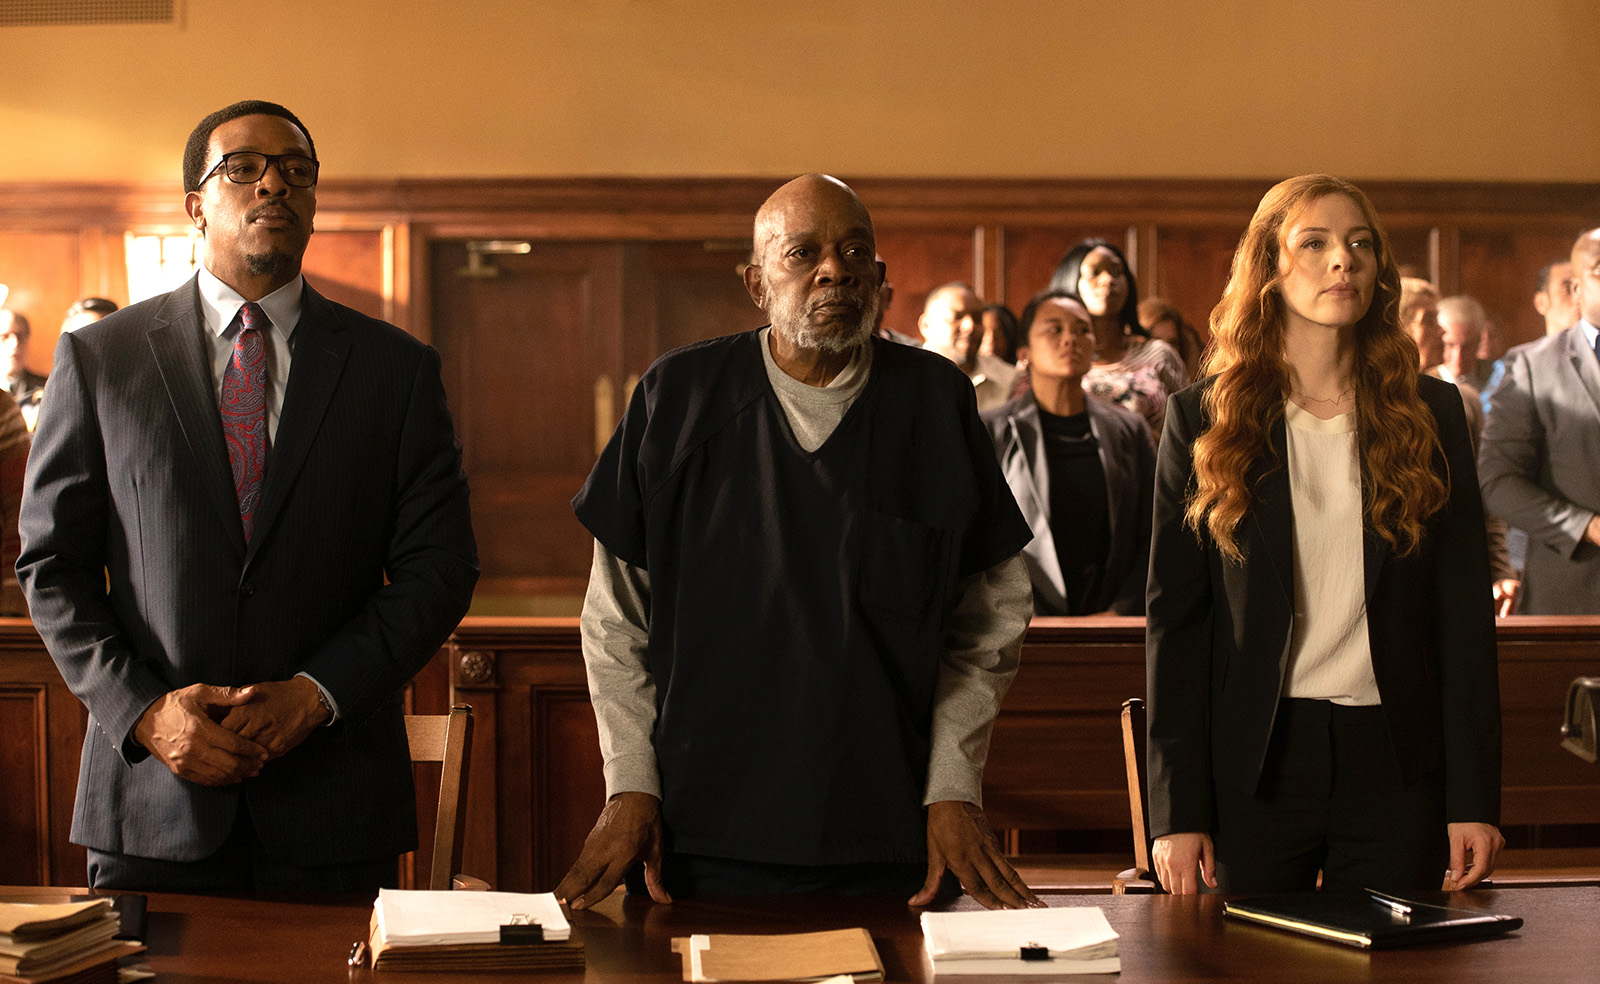 Russell Hornsby, Ernest Perry Jr. and Rachelle Lefevre in the premiere episode of 'Proven Innocent' (Fox)